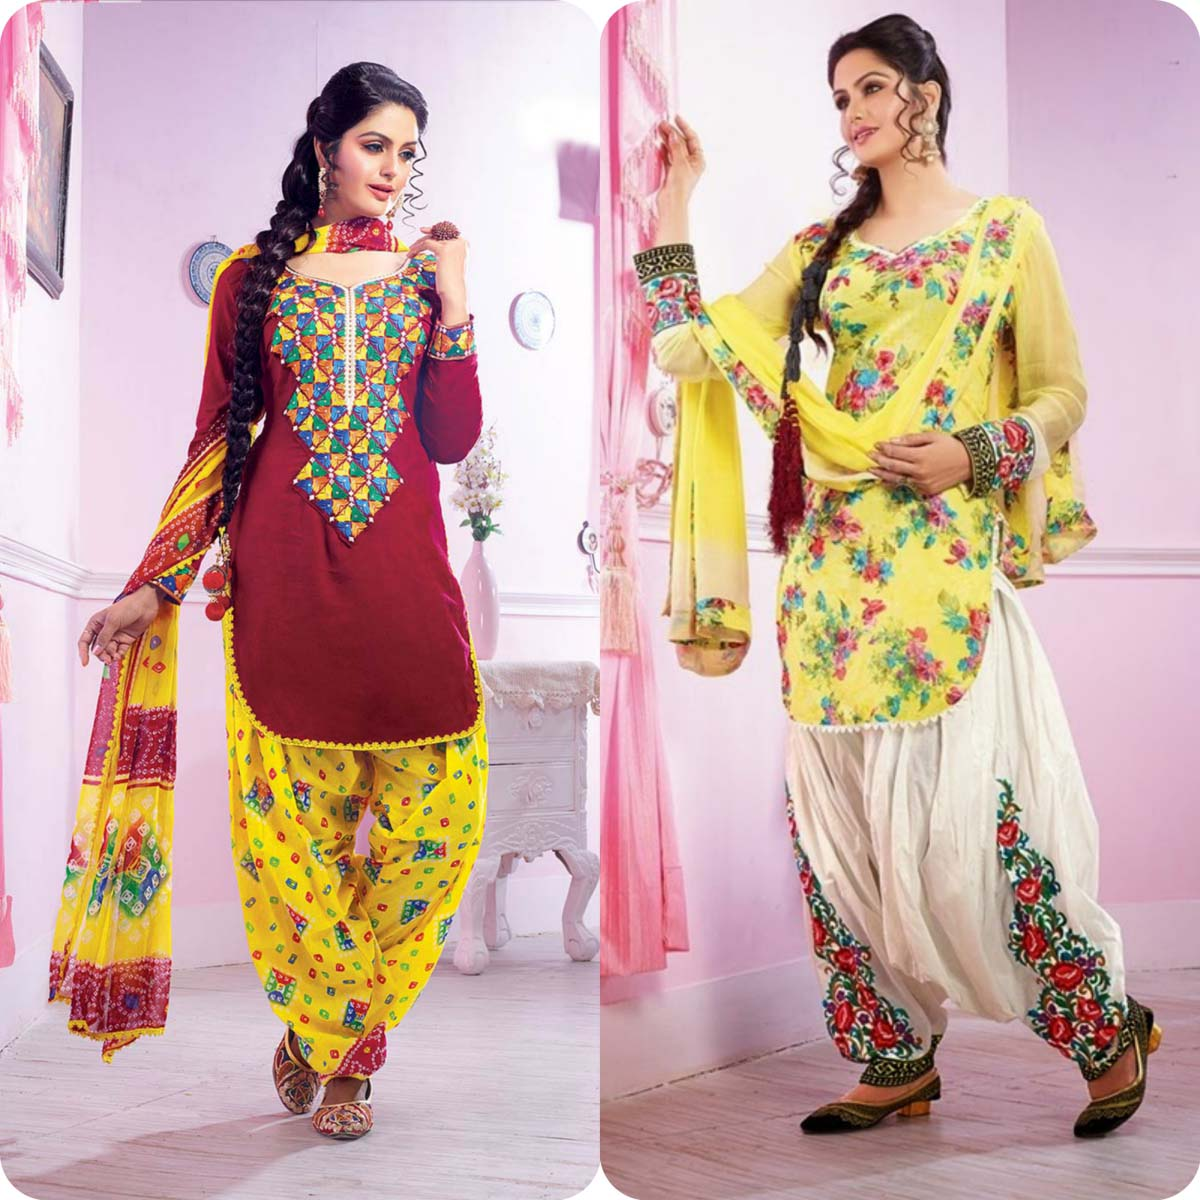 Formal shalwar kameez suits